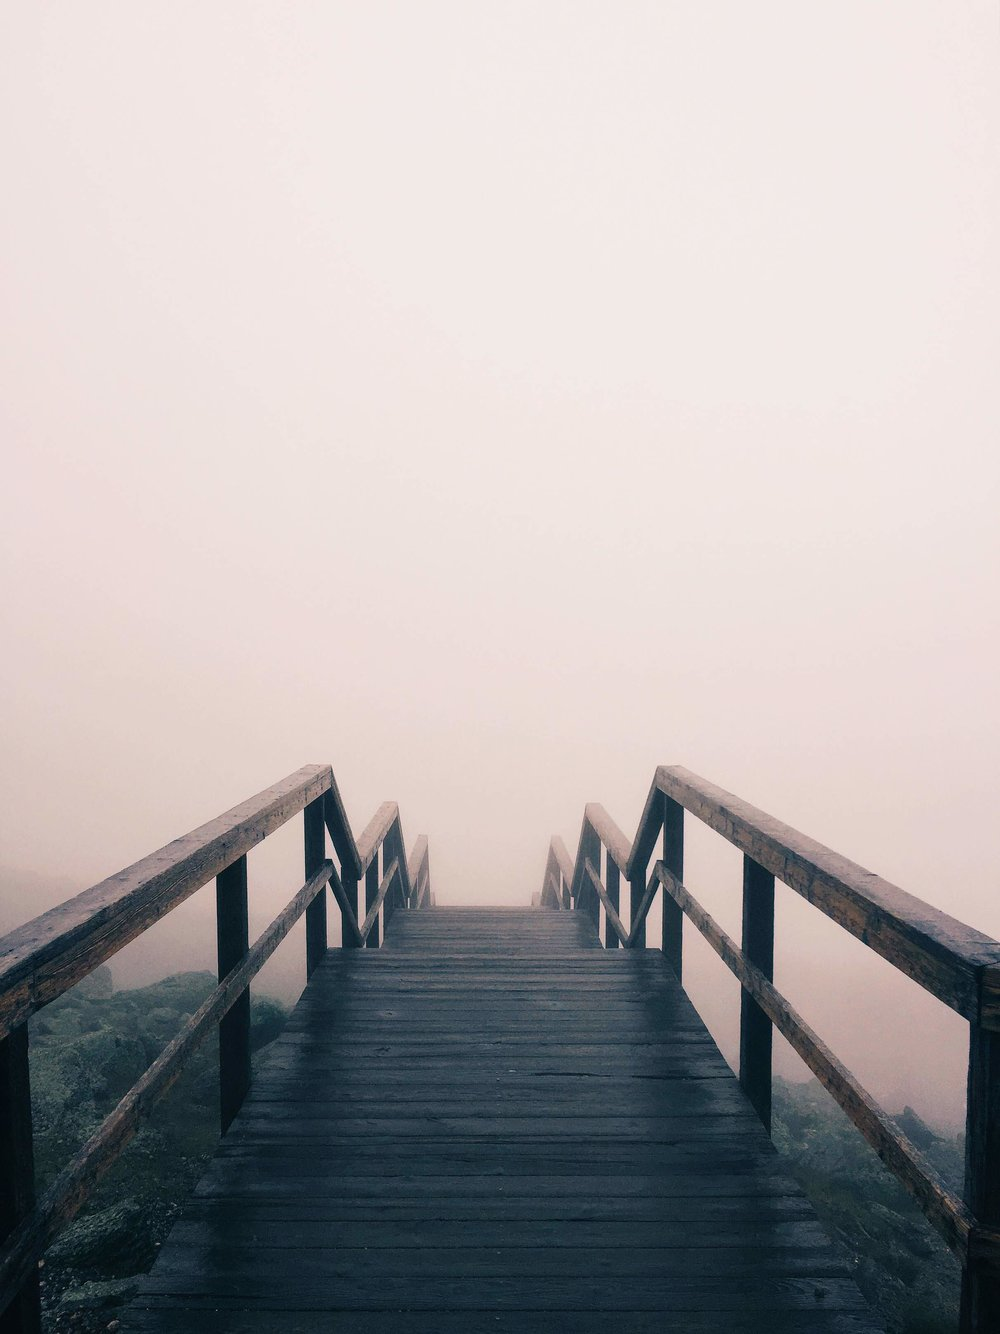 How might we help students be less afraid of the fog and be more wiling to take one step at a time?